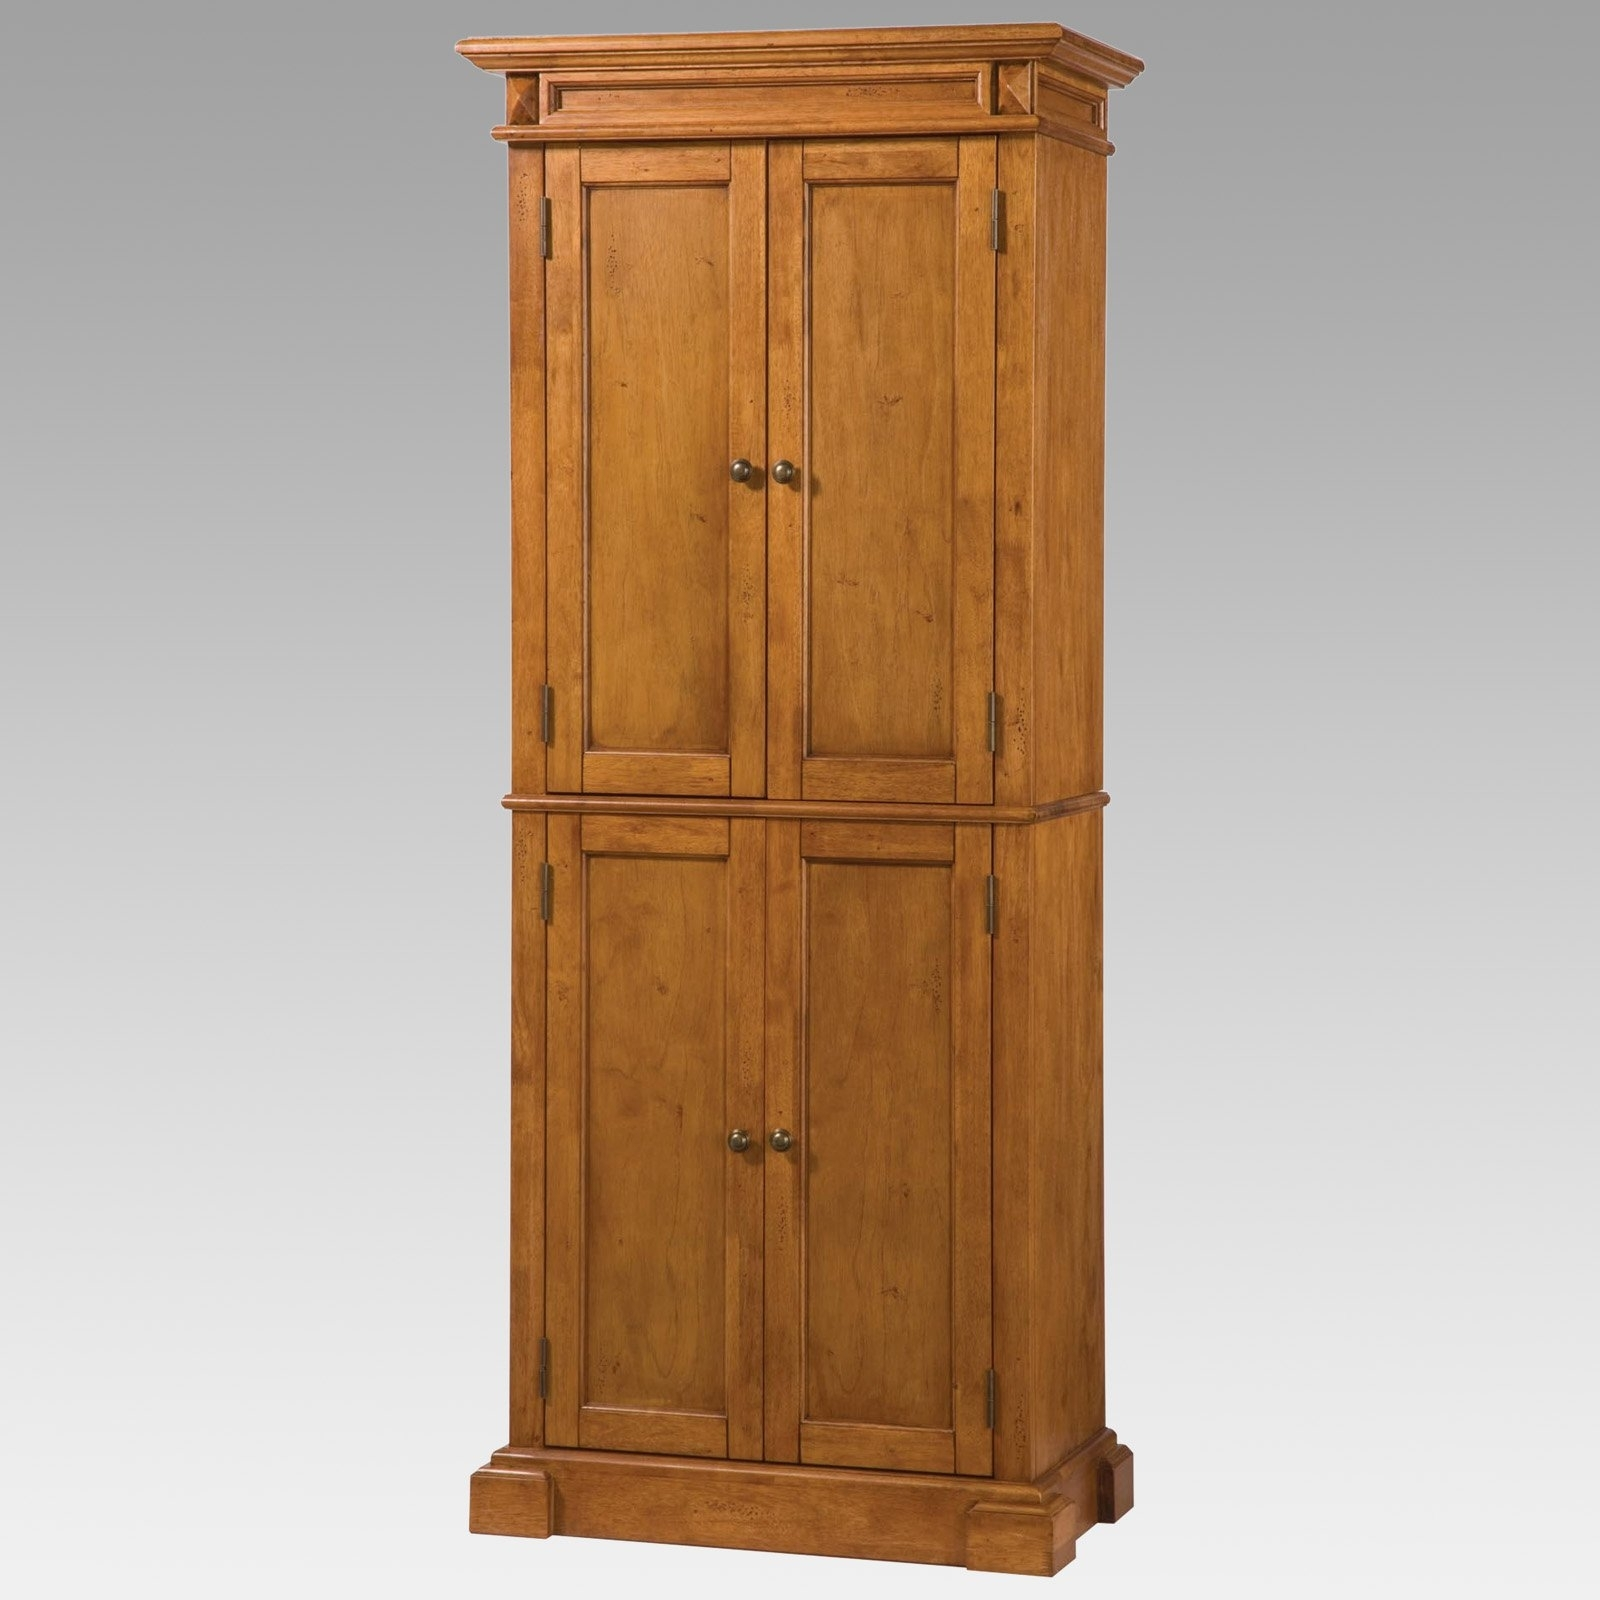 Home Styles Americana Solid Hardwood Cottage Oak Finish Pantry Intended For Pantry Cabinets To Utilize Your Kitchen (Image 12 of 17)